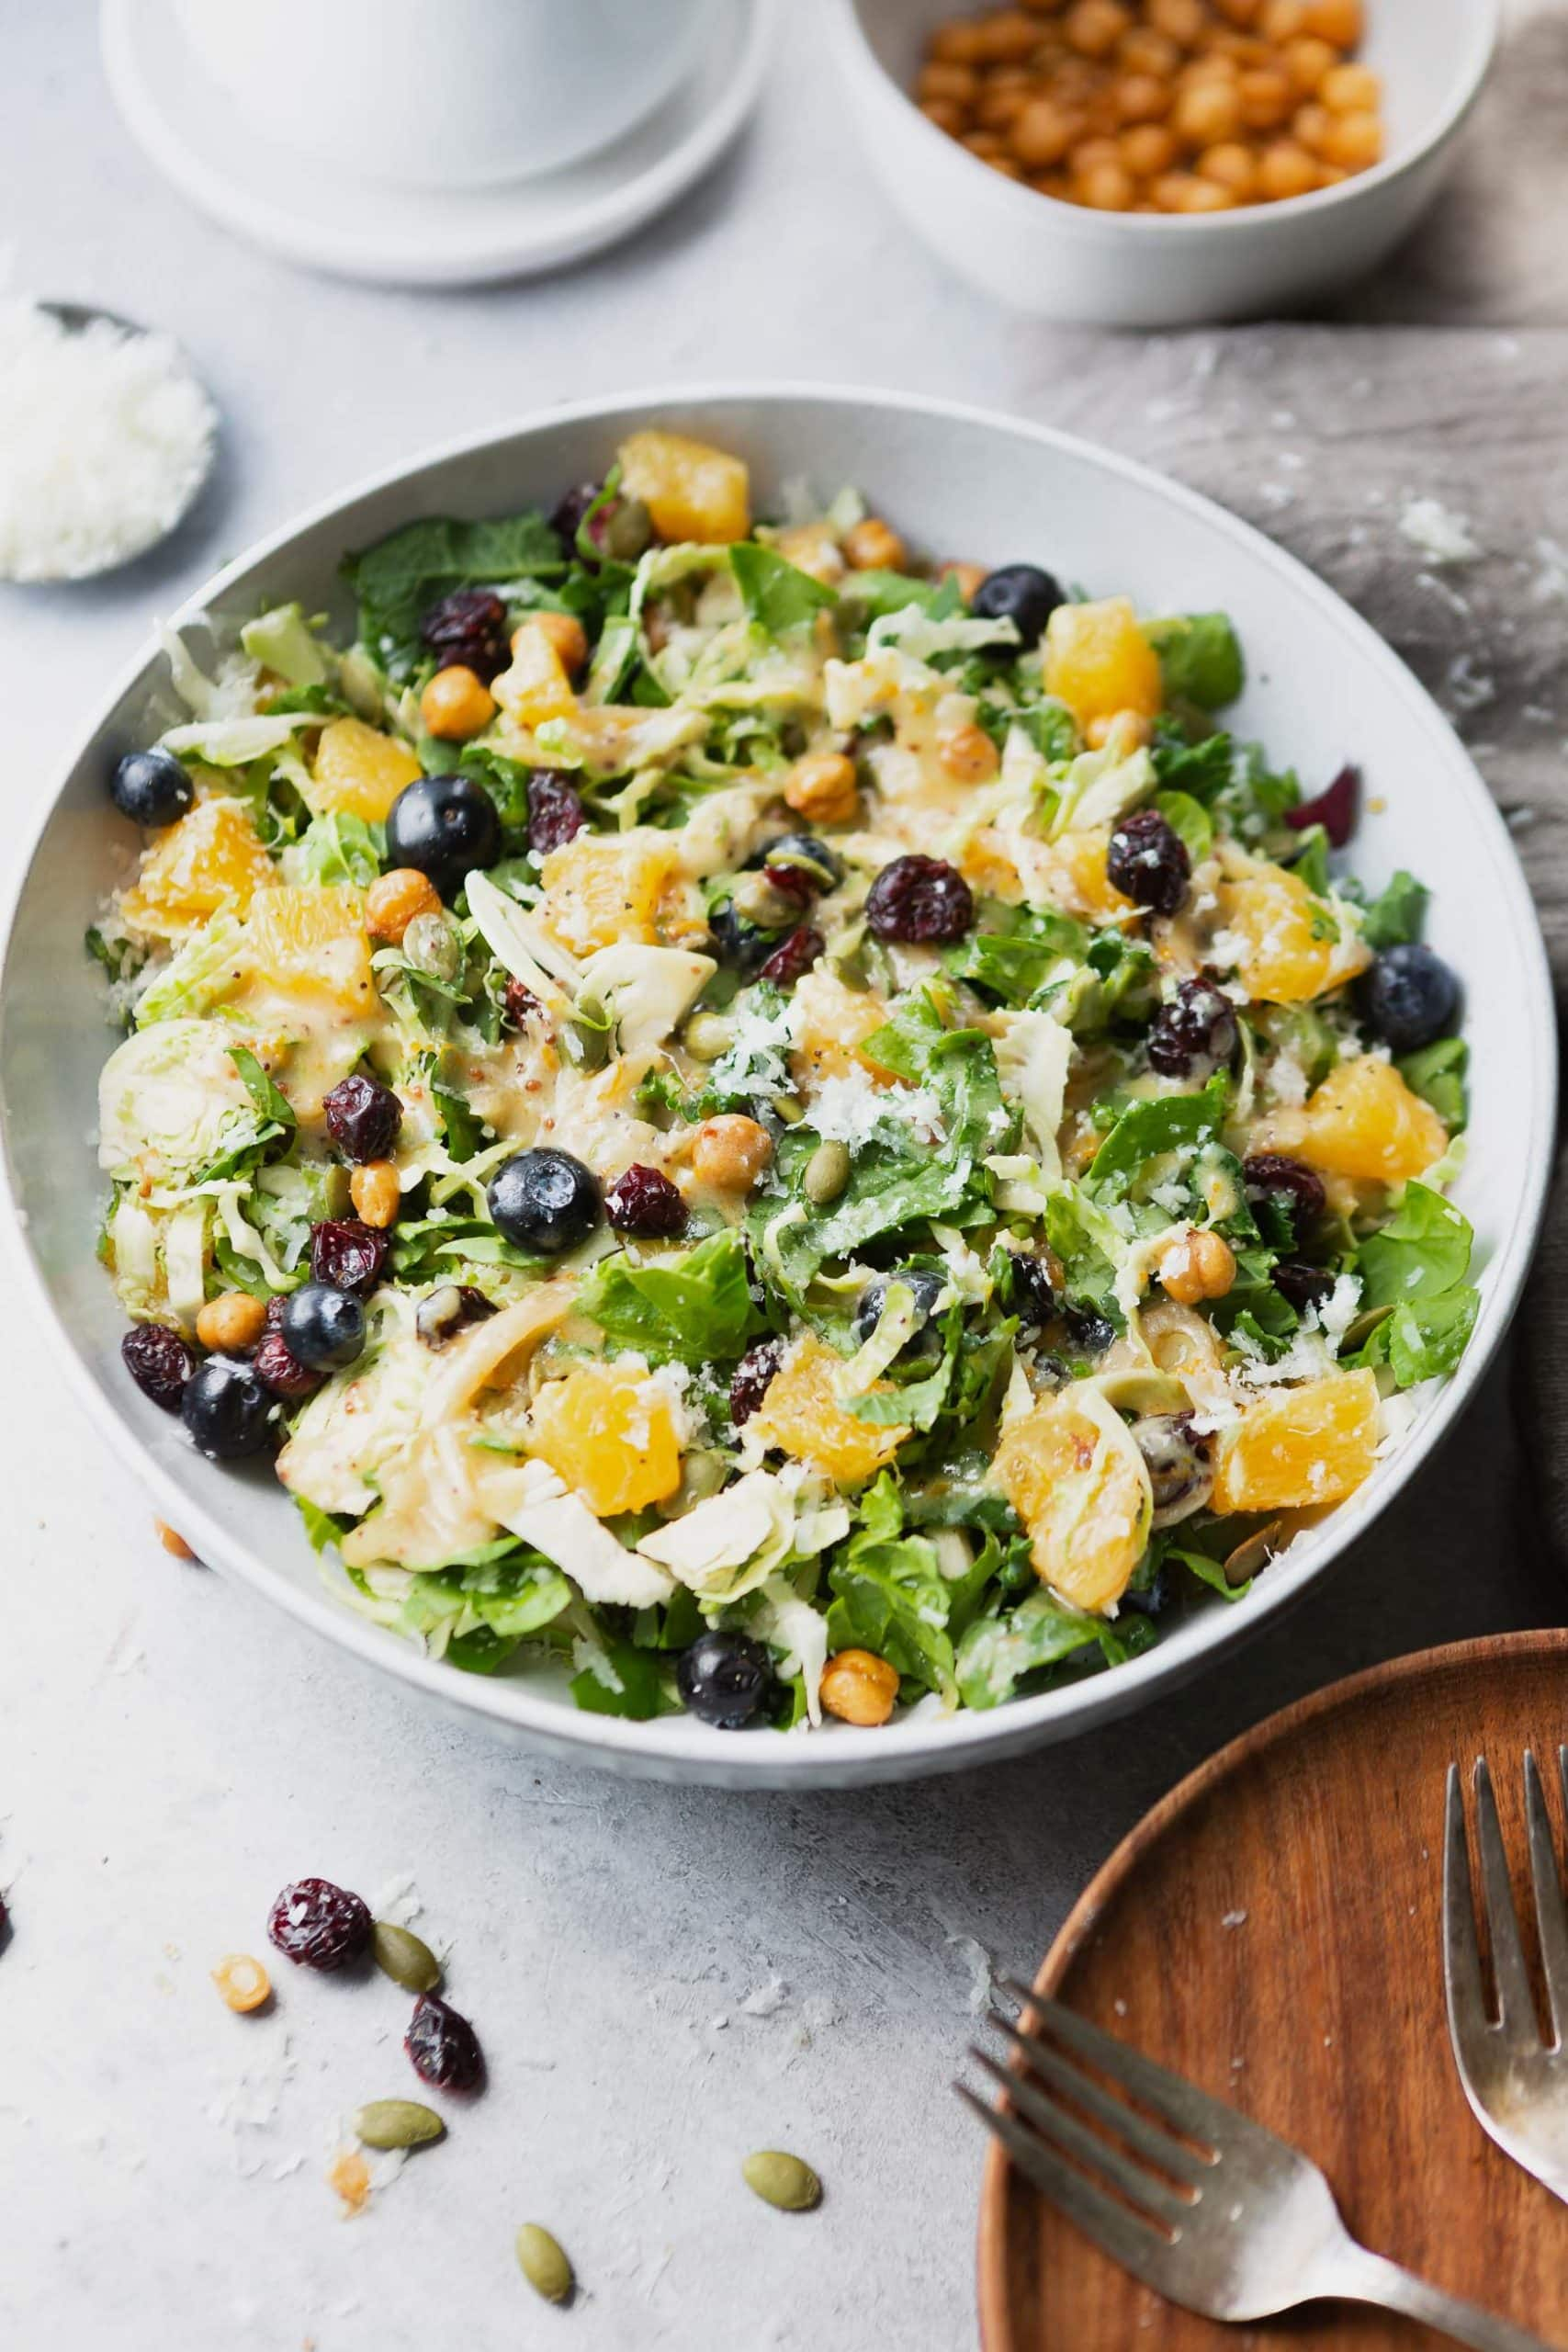 a photo of a large serving bowl full of shredded brussels sprouts salad topped with chunks of oranges, manchego cheese, blueberries, and craisins.